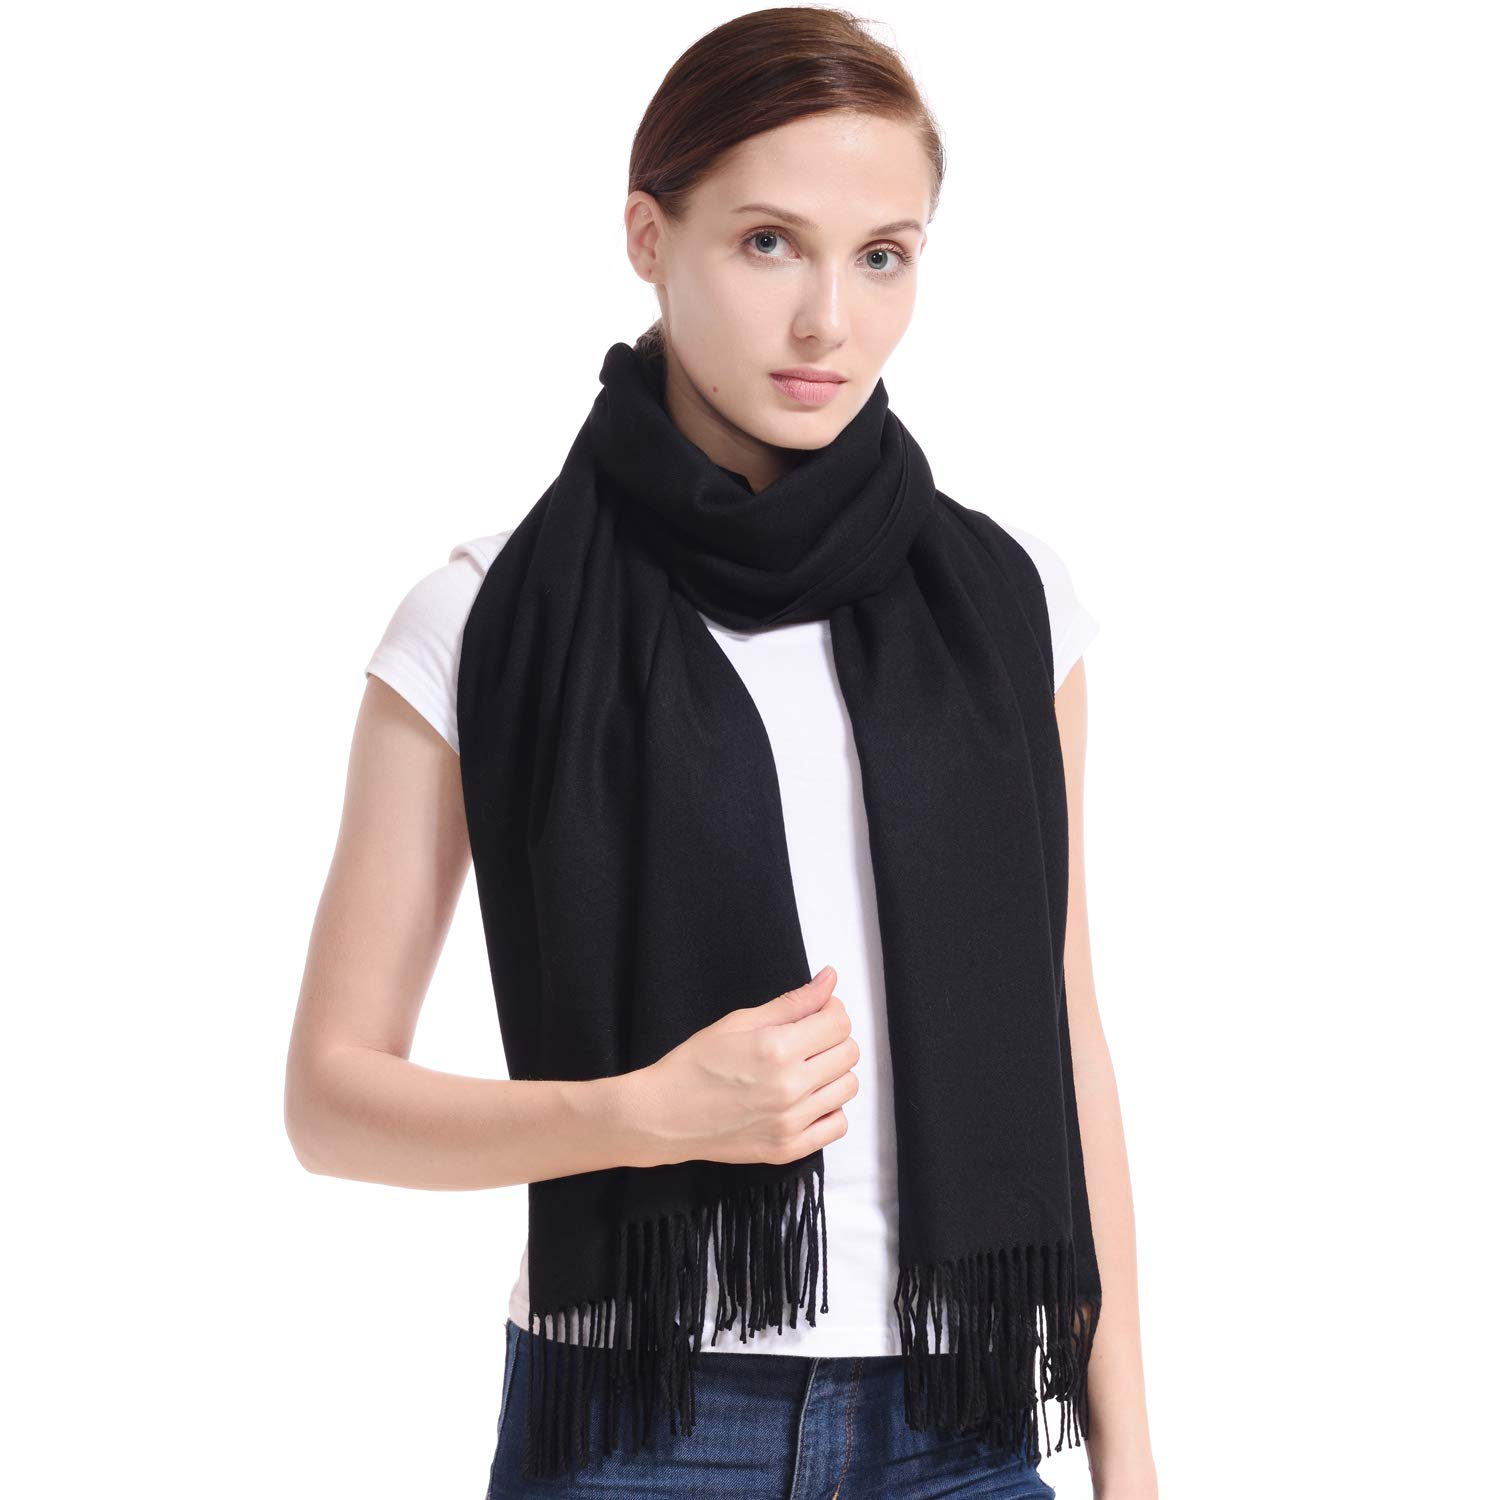 LERDU Womens Cashmere Shawls Wraps Scarves Fashion Large Warm Shawls Xmas Gift Idea Winter Pashmina Shawls for Women